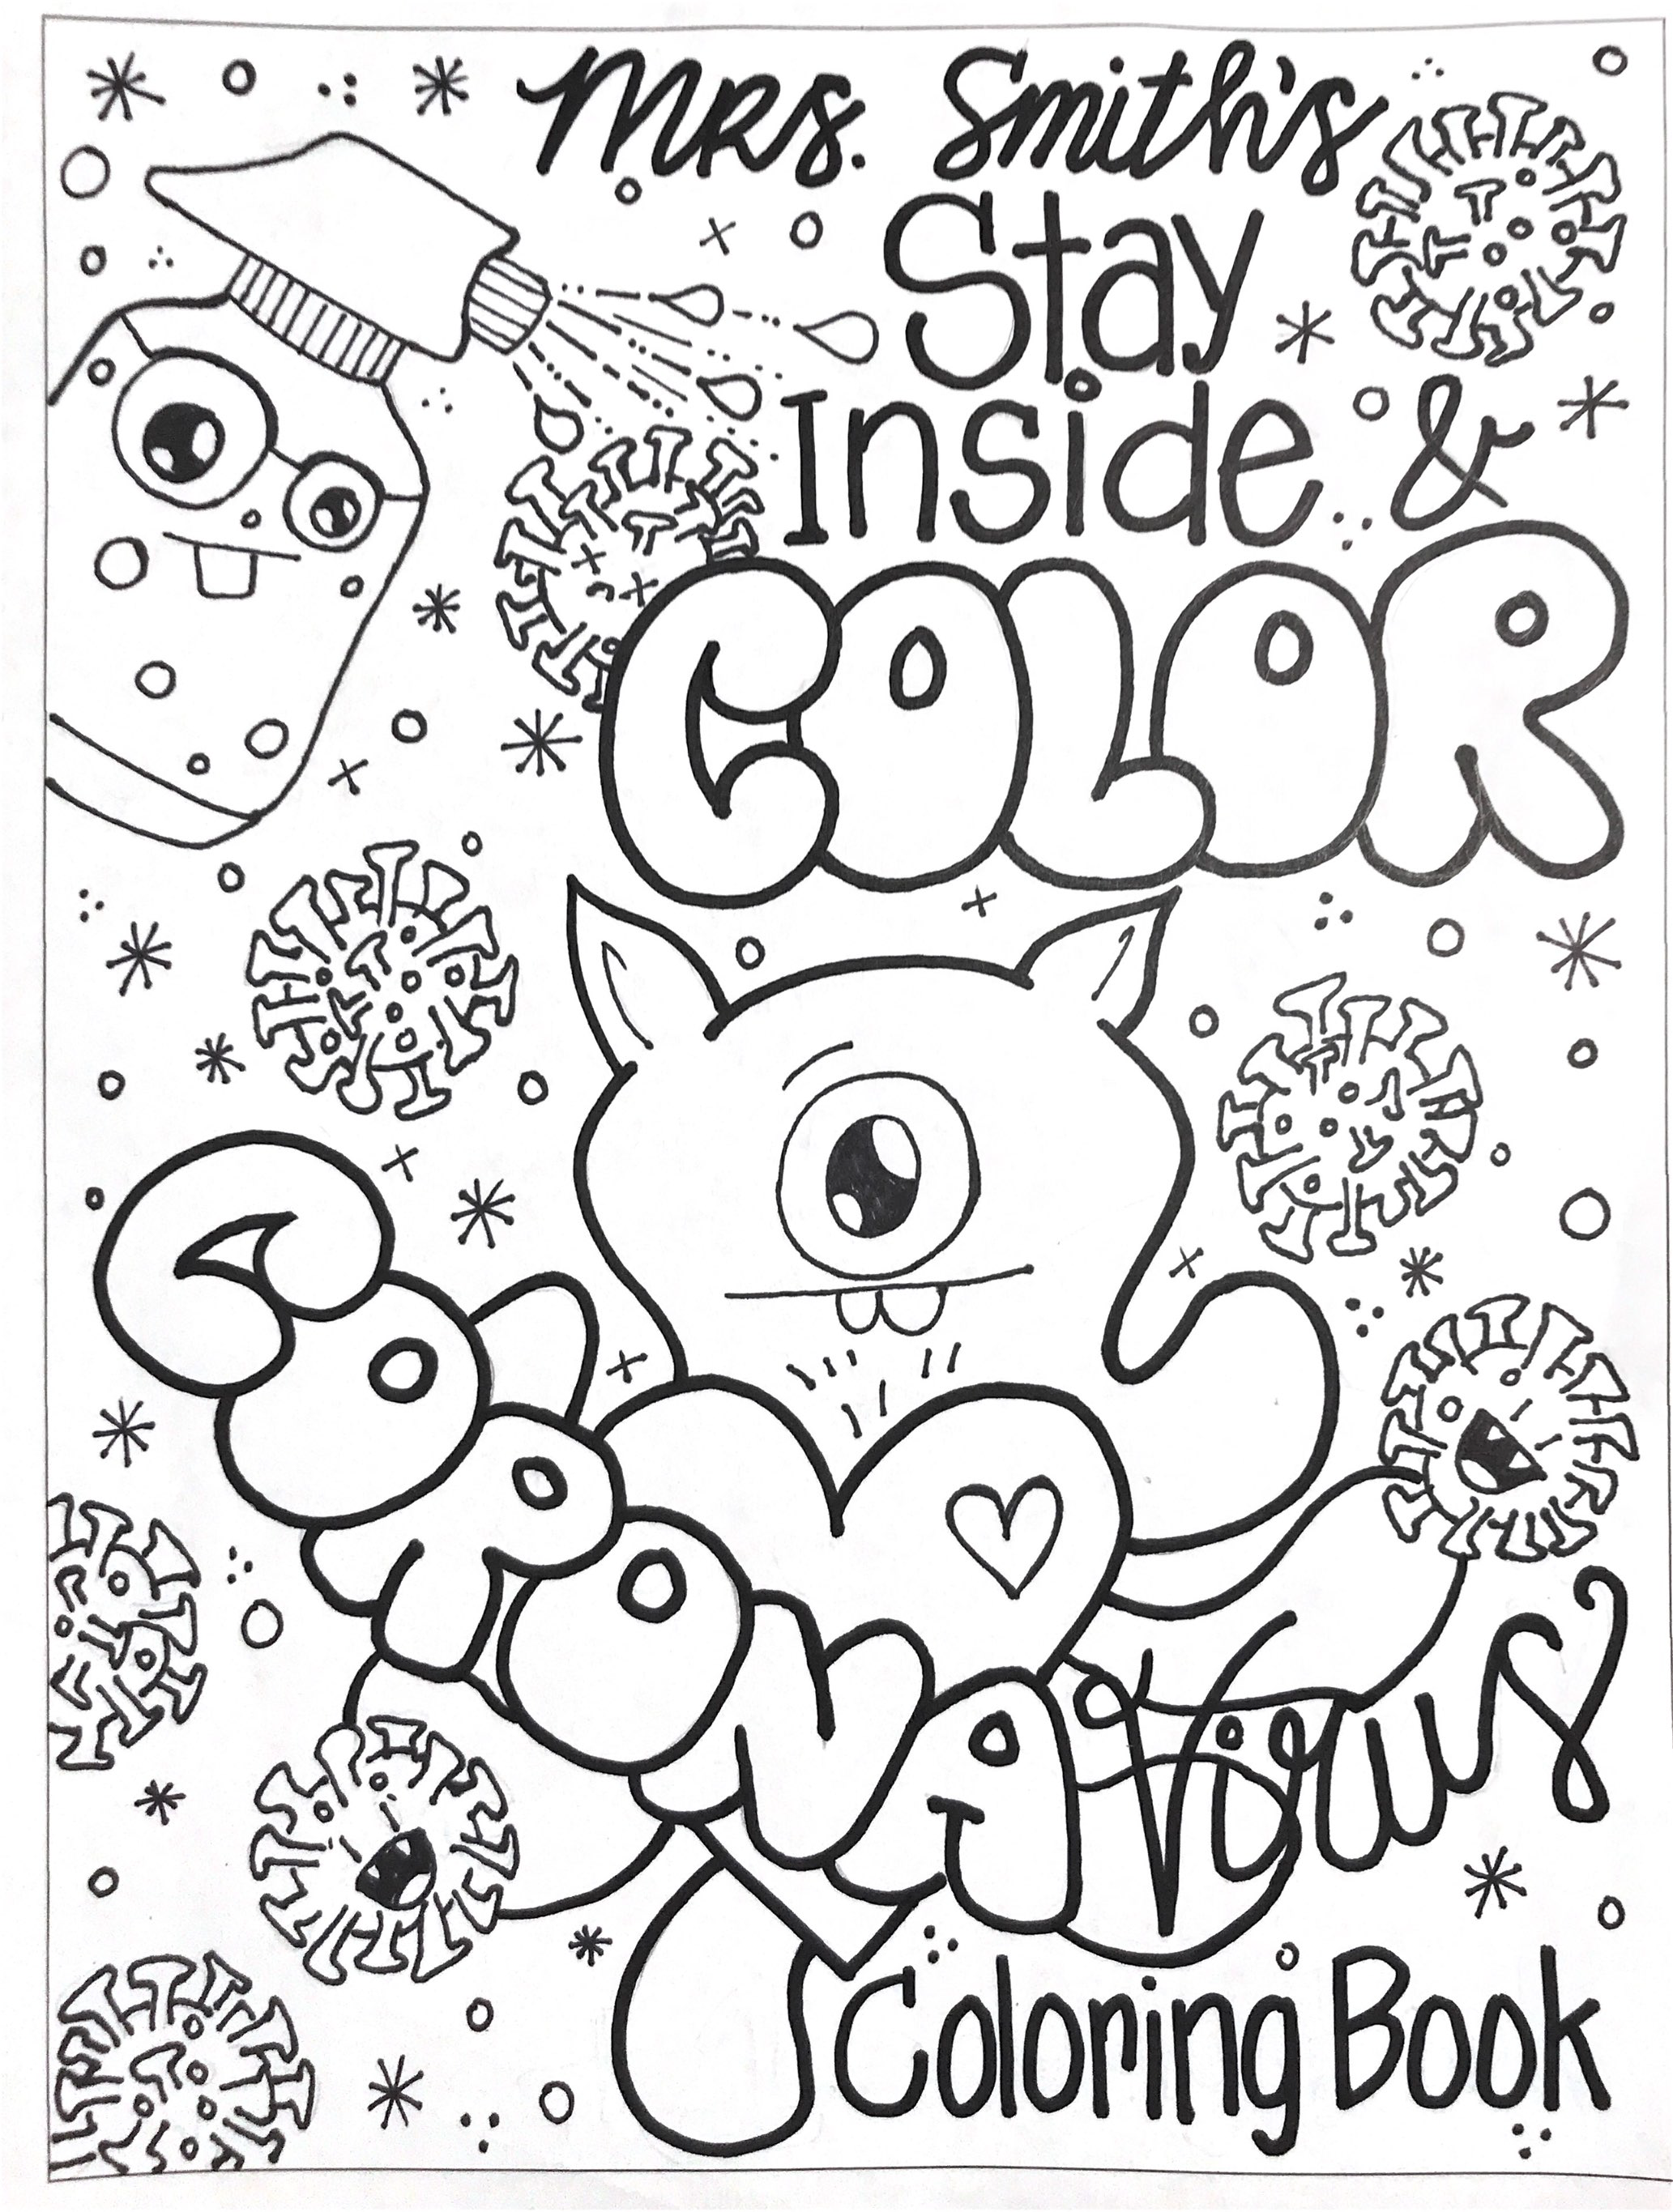 Rona Coloring Pages Digital Download Coloring Pages Rona Color